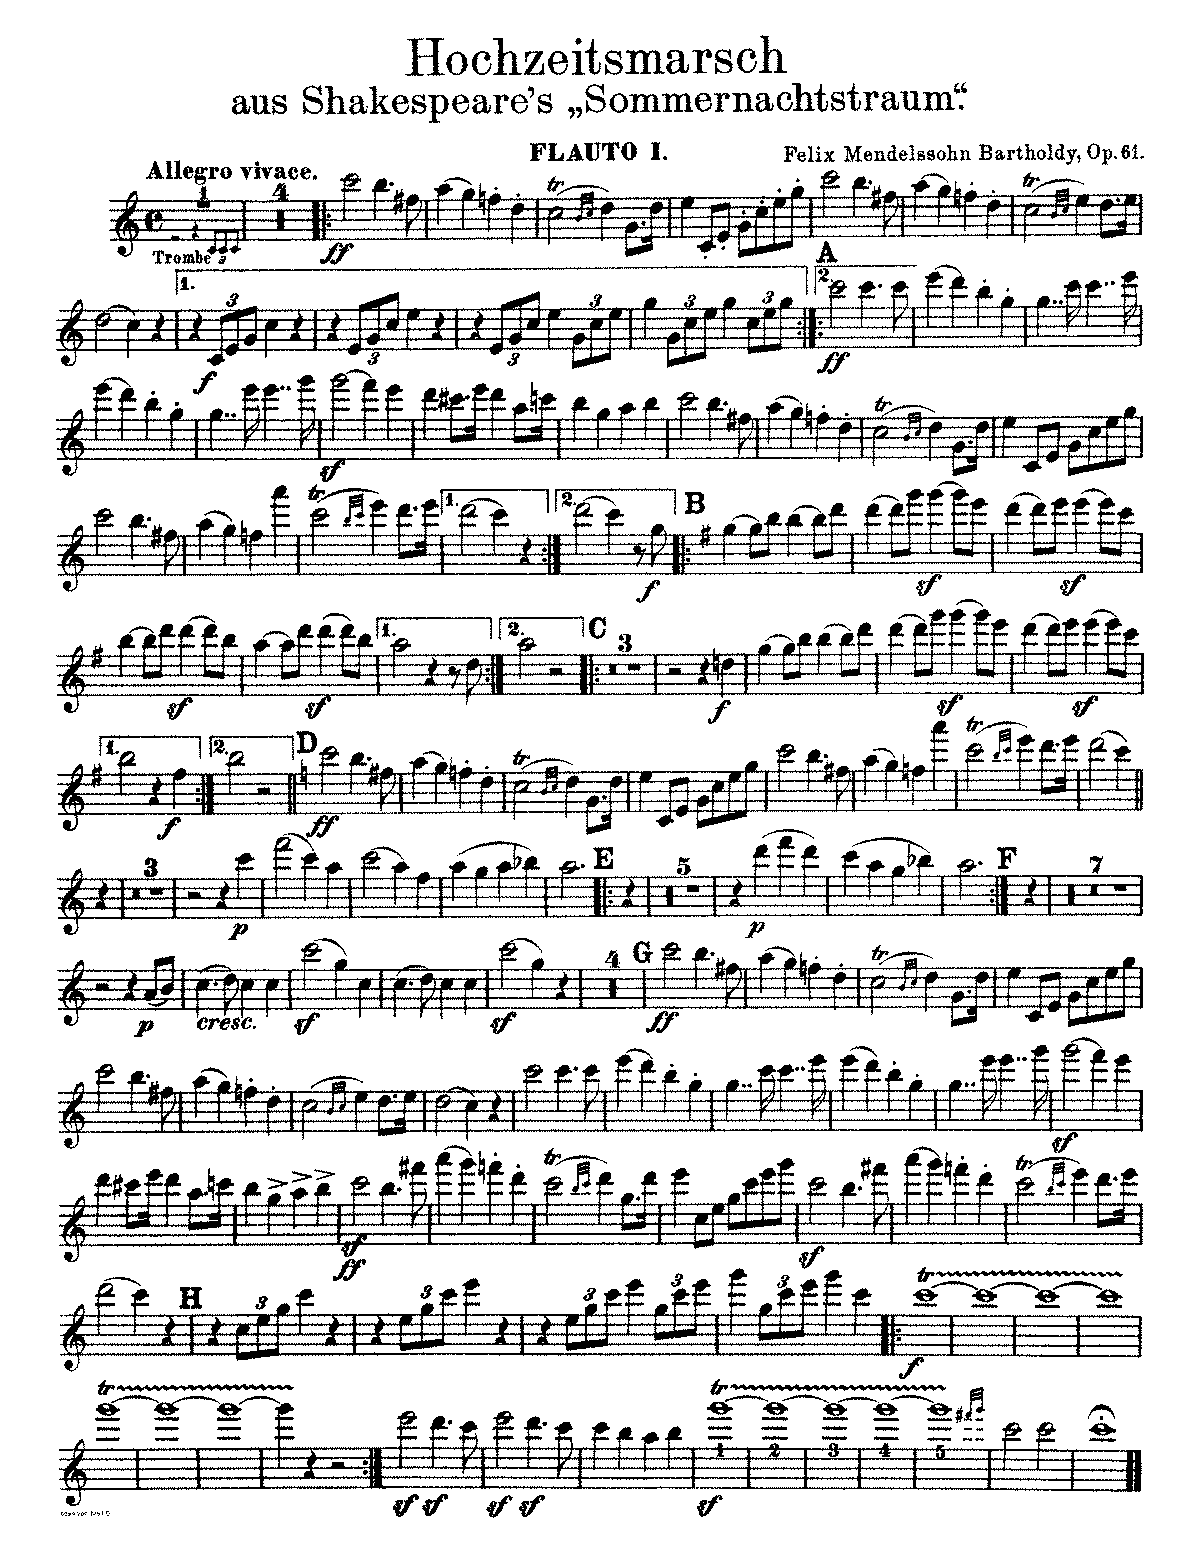 PMLP18079-Mendelssohn Op61 Wedding March Flutes.pdf